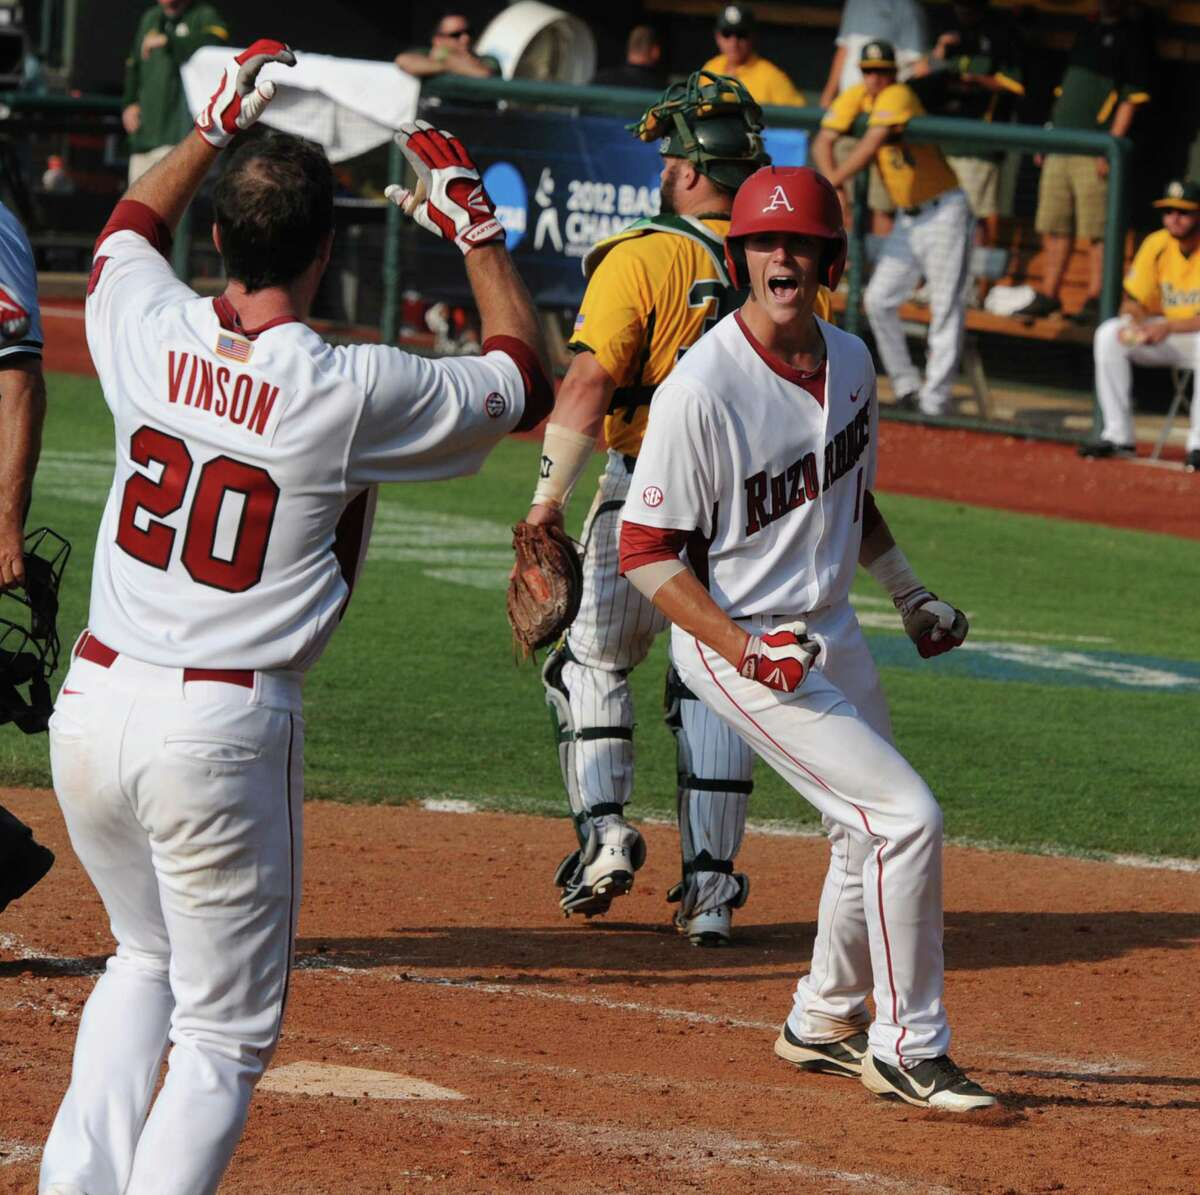 Arkansas' Brian Anderson, right, celebrates with teammate Matt Vinson (20) after scoring the game-winning run on a hit batter in the bottom of the ninth inning of an NCAA college baseball tournament super regional game against Baylor, Sunday, June 10, 2012, in Waco.